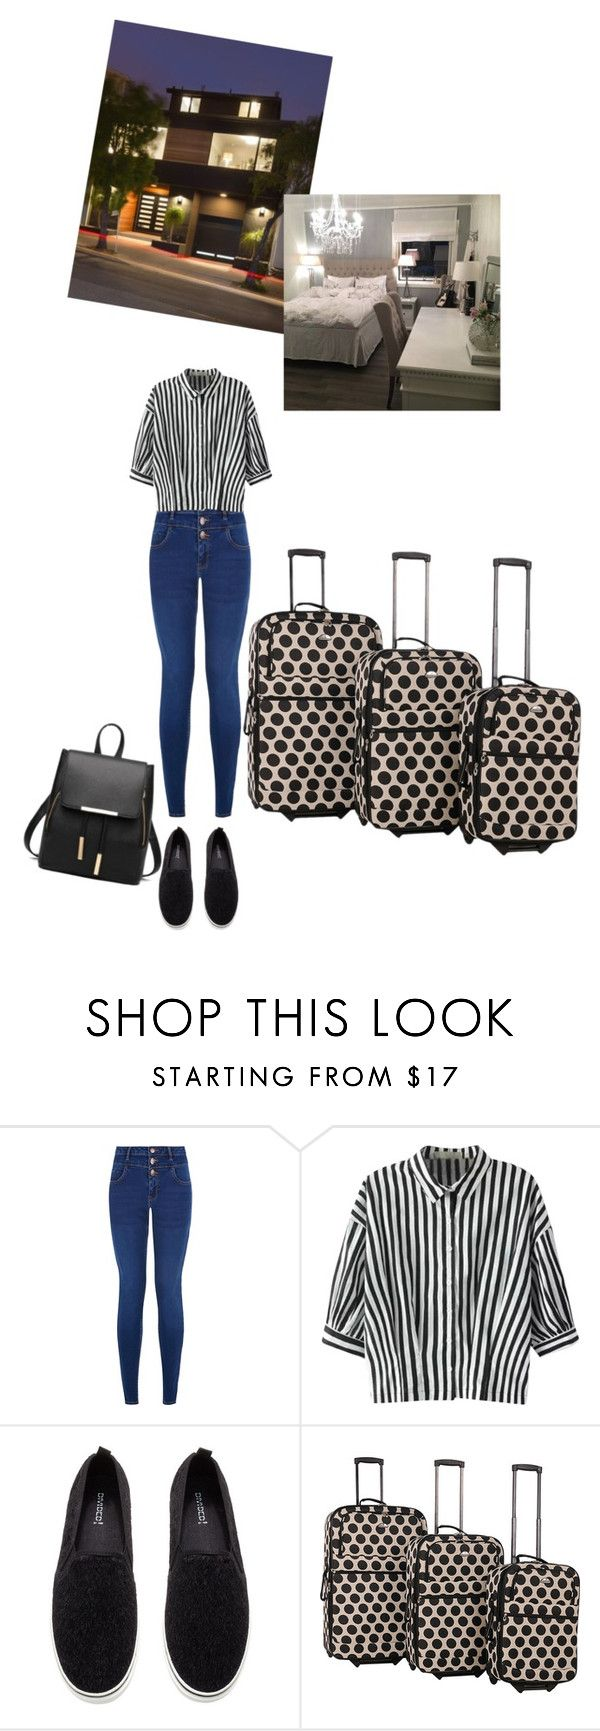 """Welcome to home"" by medicicapetiens ❤ liked on Polyvore featuring New Look, Relaxfeel, H&M and American Flyer"